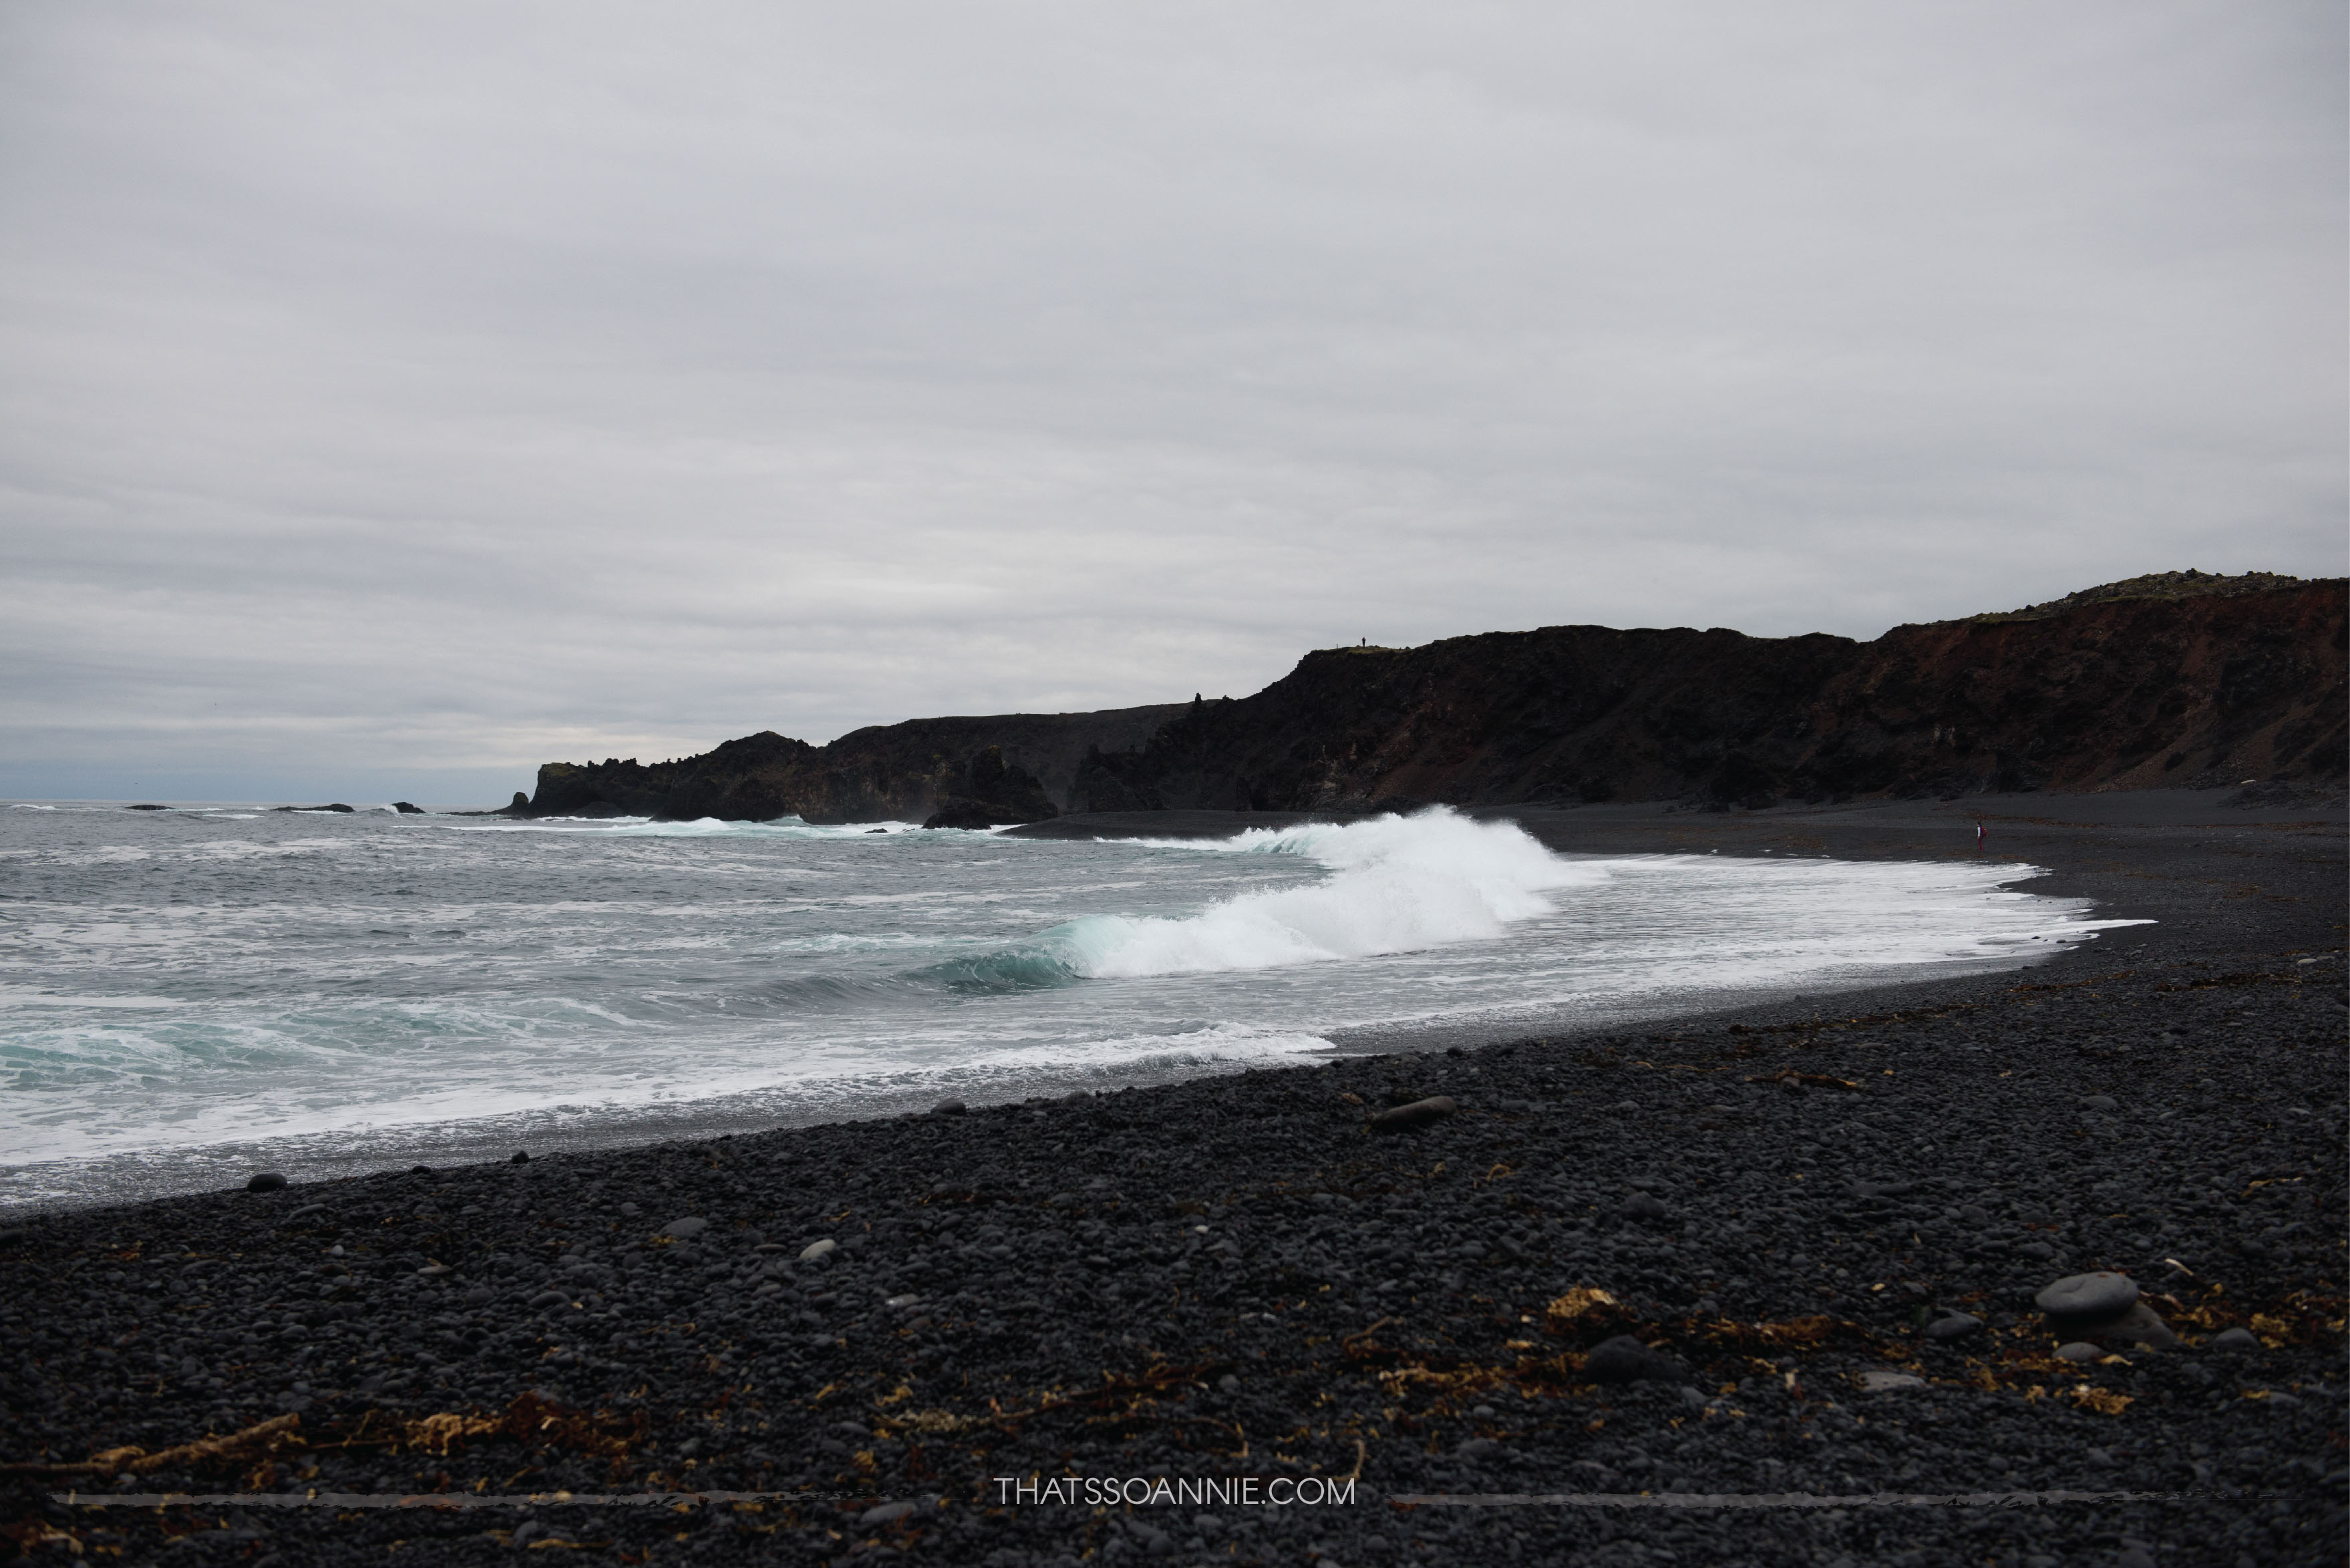 Djúpalónssandur, a black pebble beach | Exploring the Snæfellsnes Peninsula, Iceland | www.thatssoannie.com